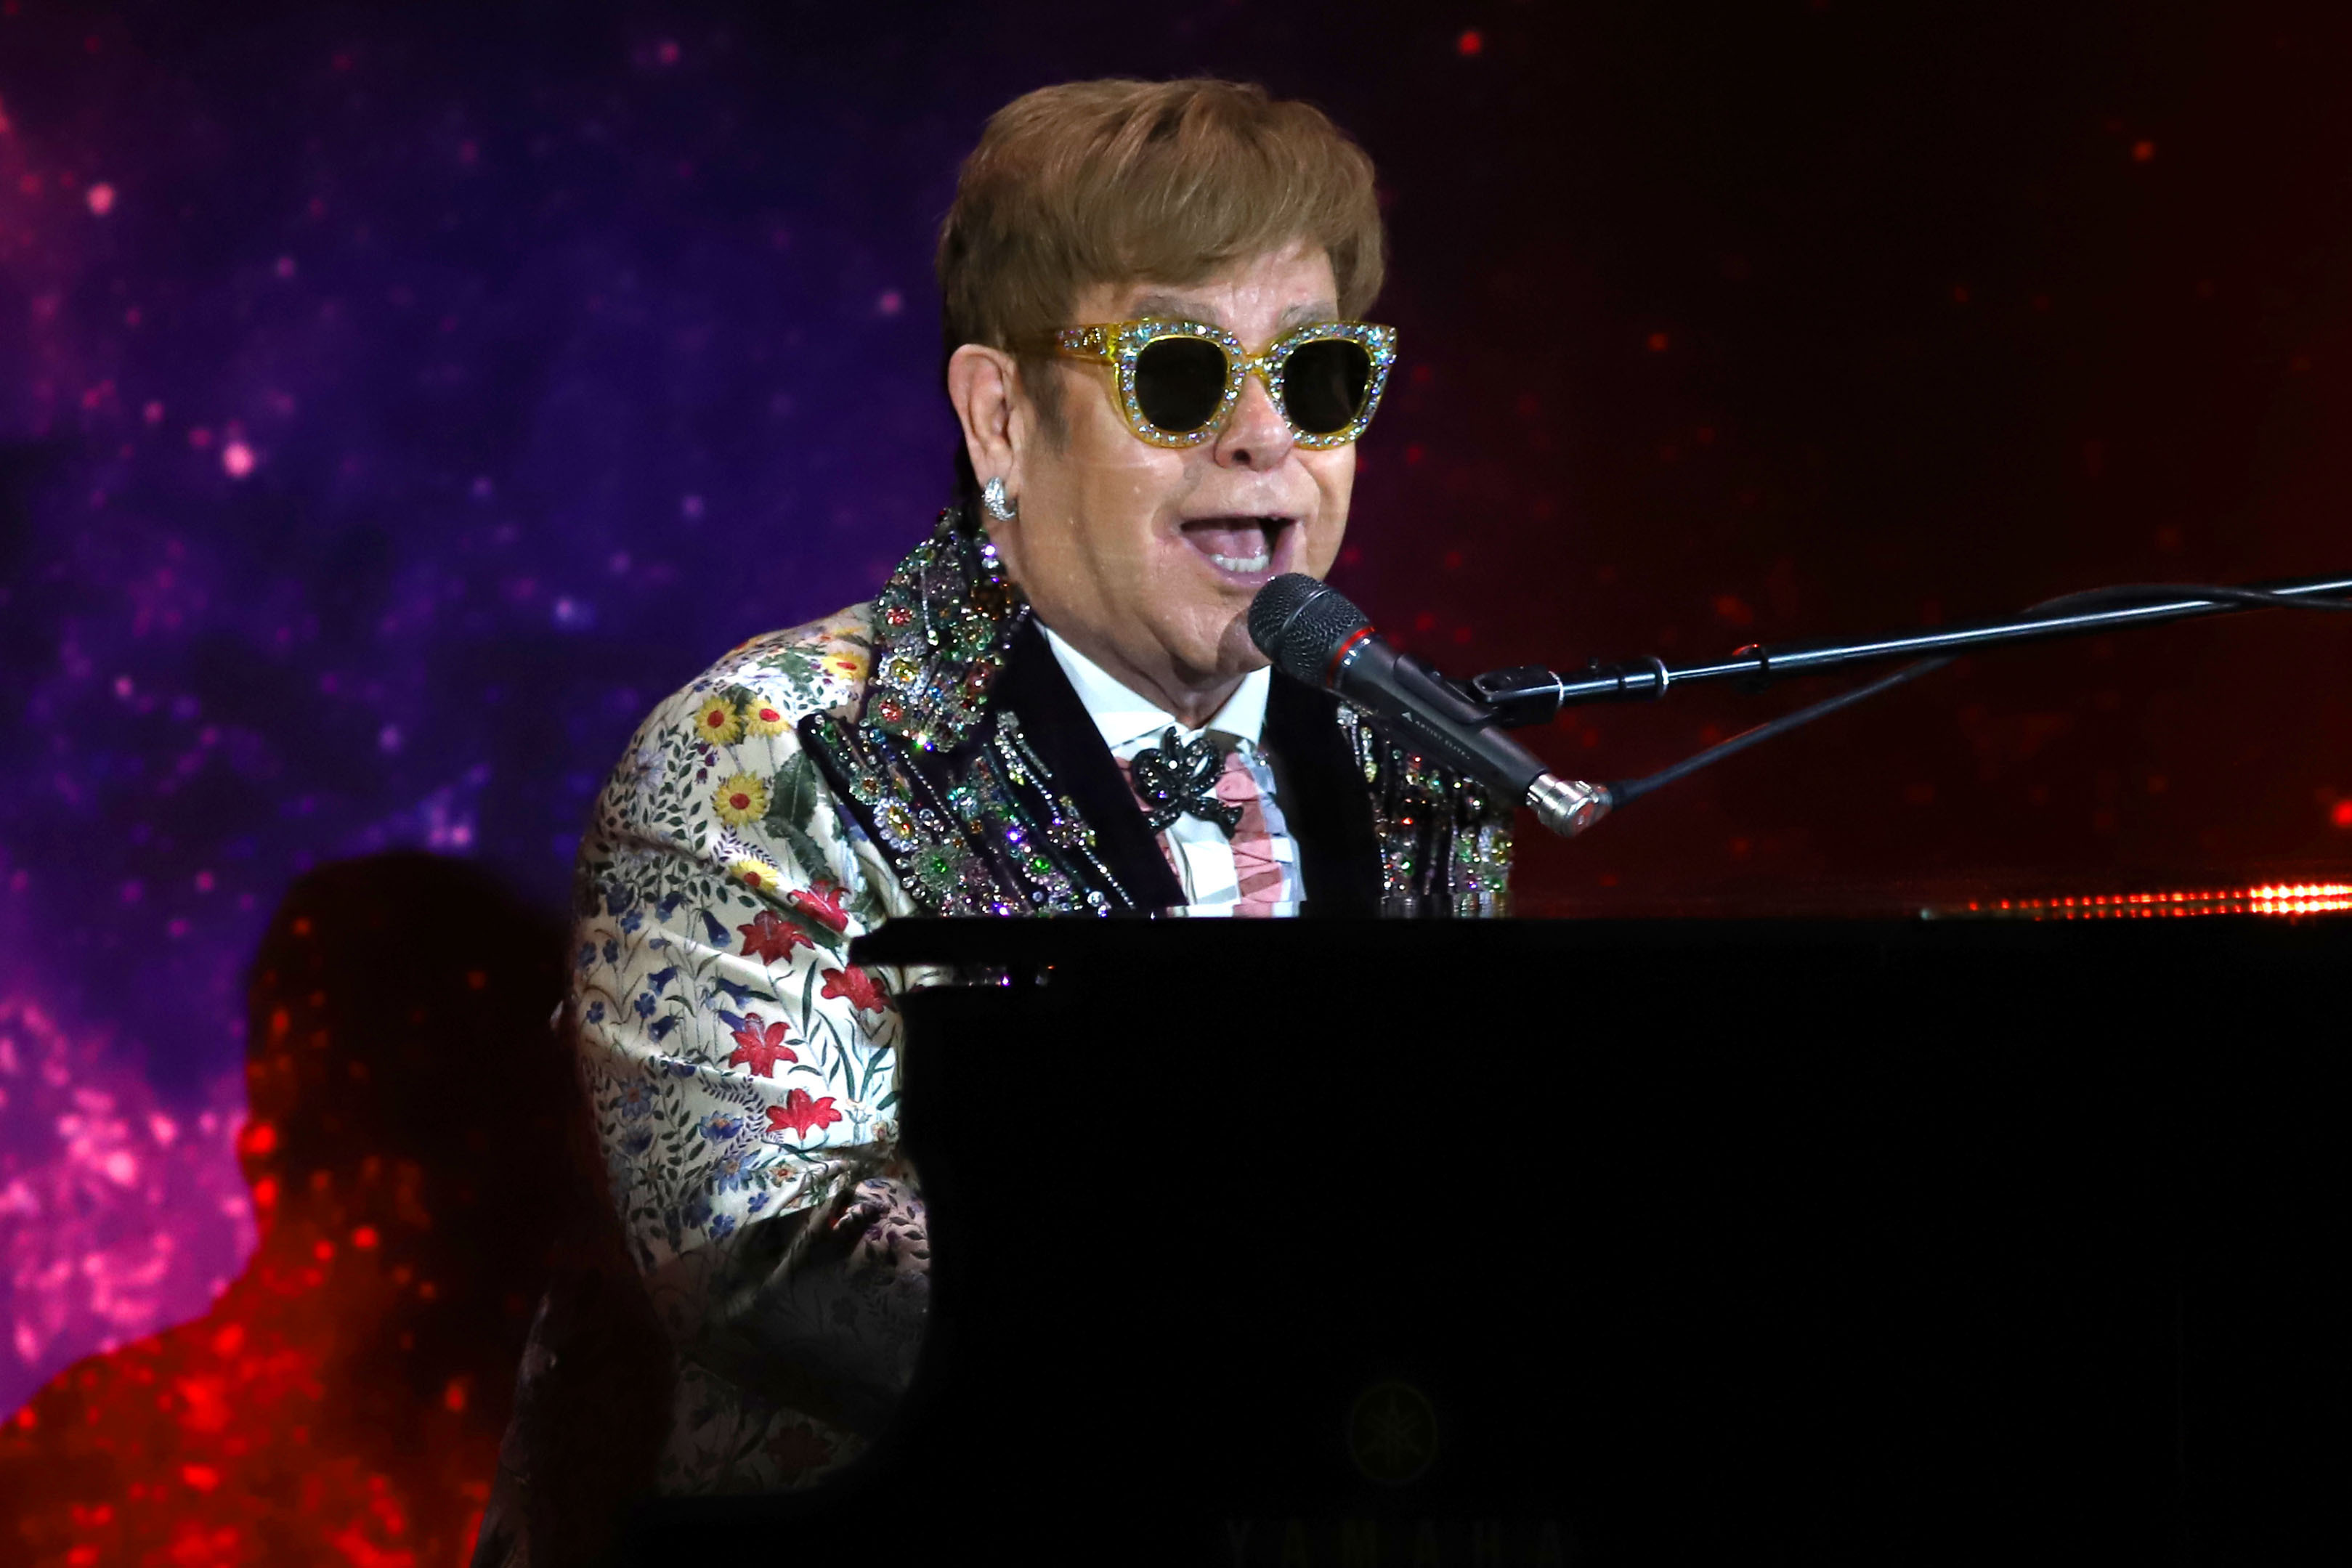 Elton John Farewell Tour Before Retiring